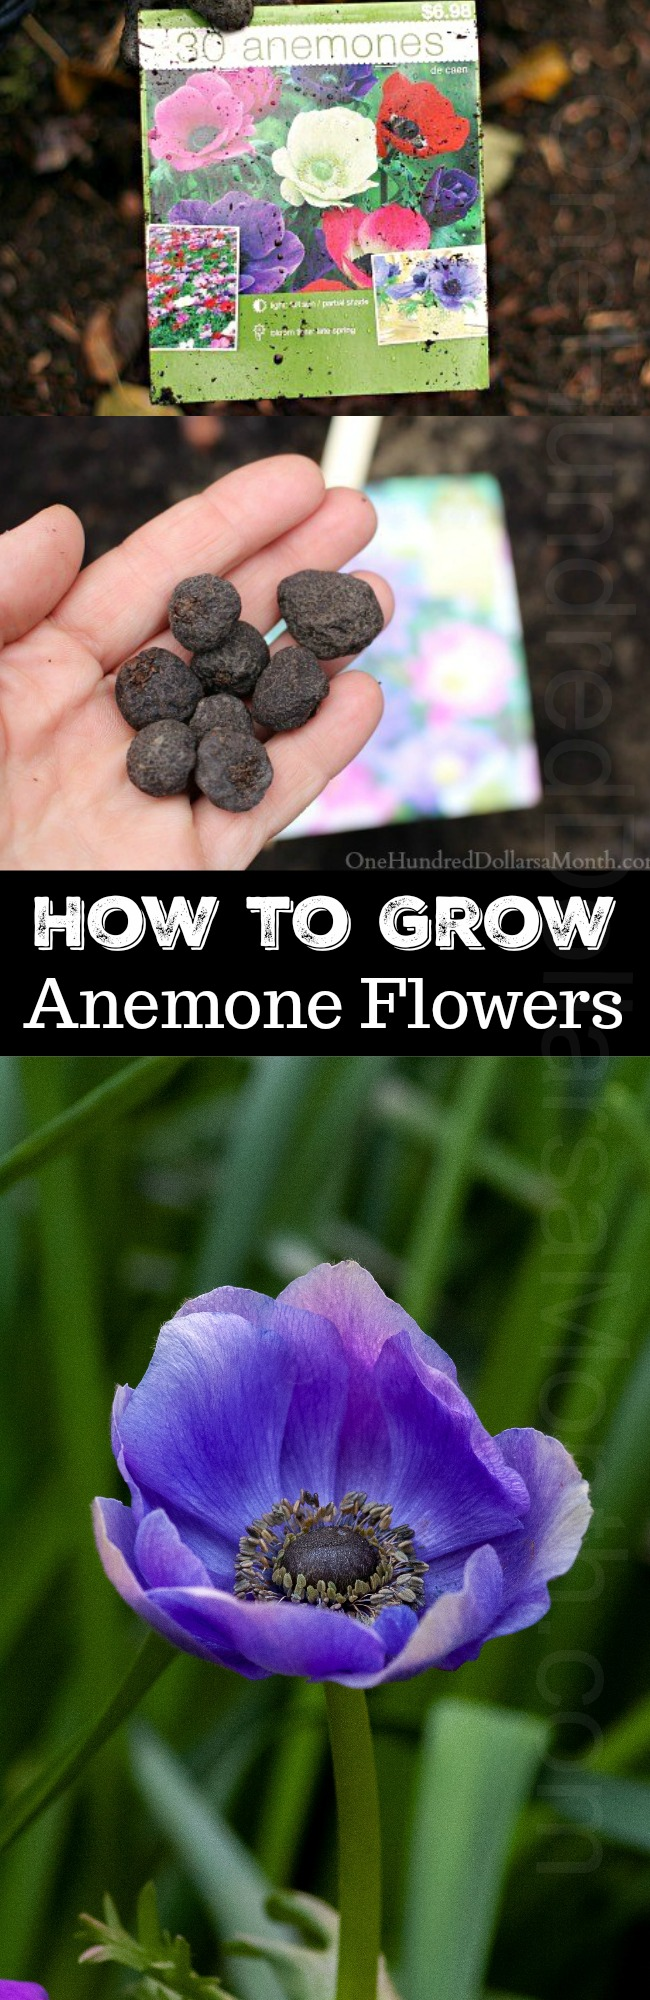 How to Grow Anemone Bulbs